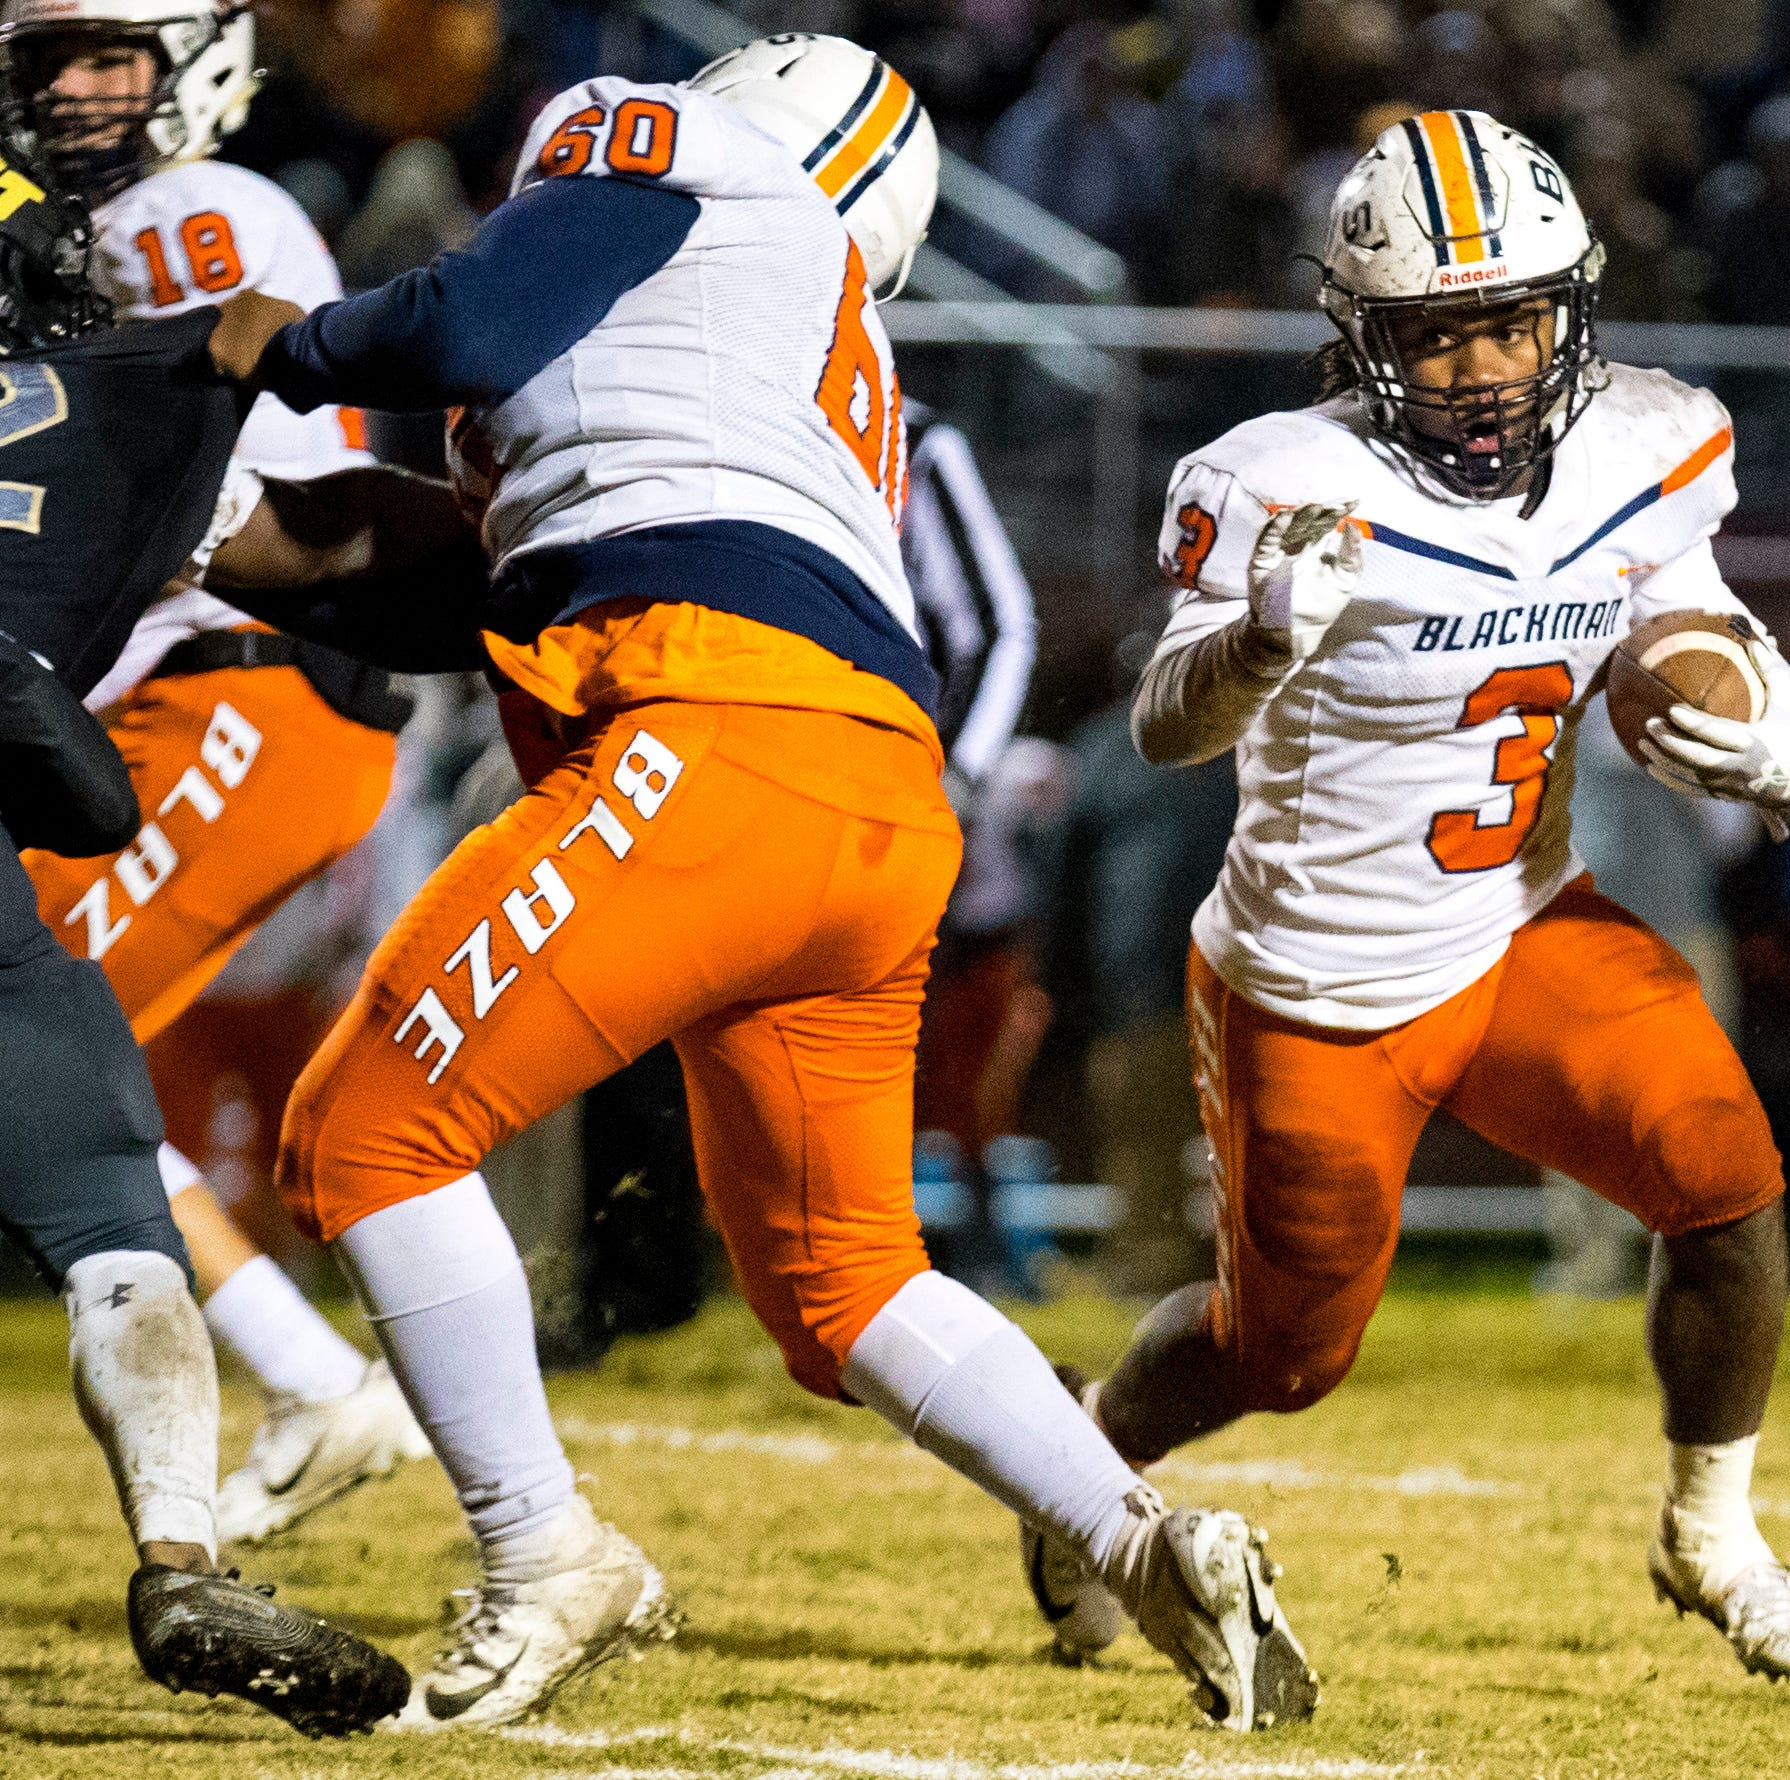 5 things that went wrong for Blackman in Friday's loss at Mt. Juliet